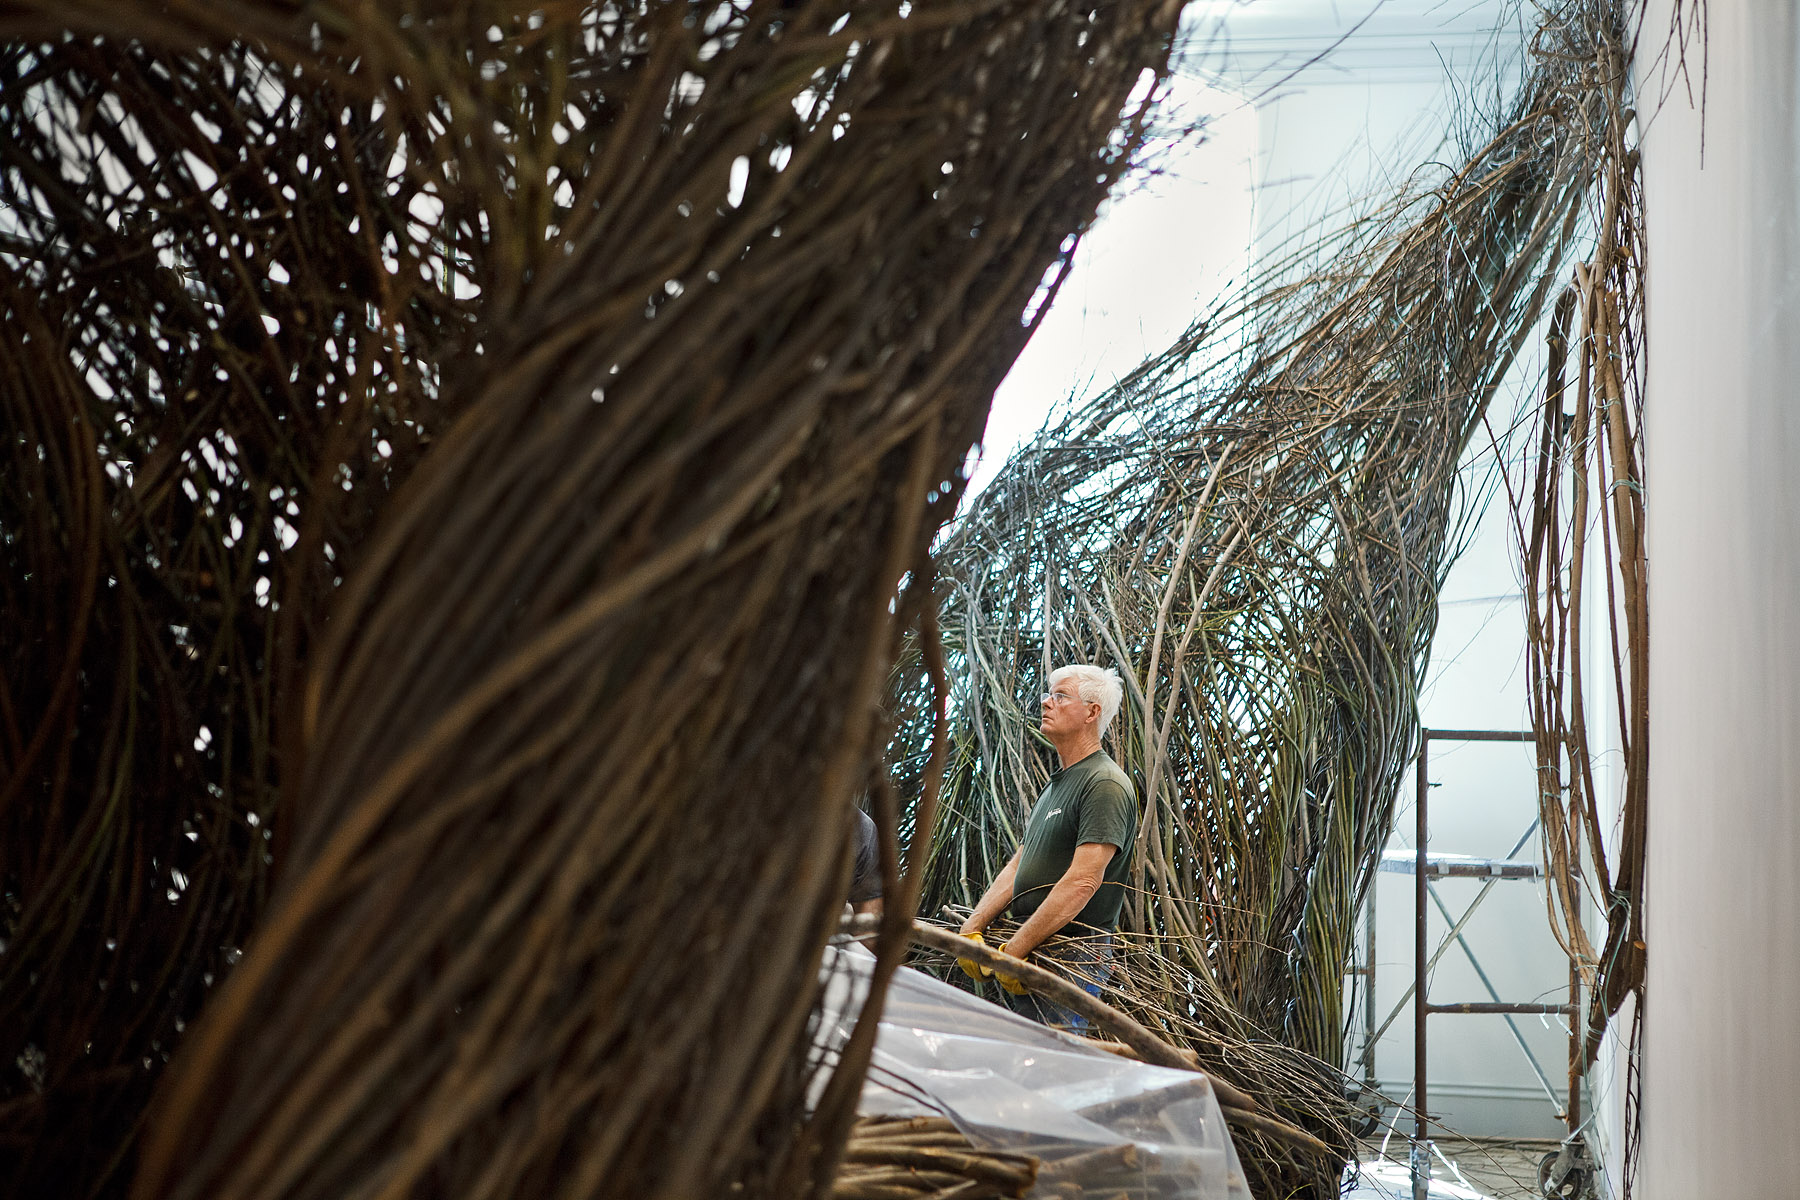 RENWICK GALLERYSmithsonianWashington, DCPatrick DoughertyDuring installation ofShindigWONDER Exhibition 2015-16